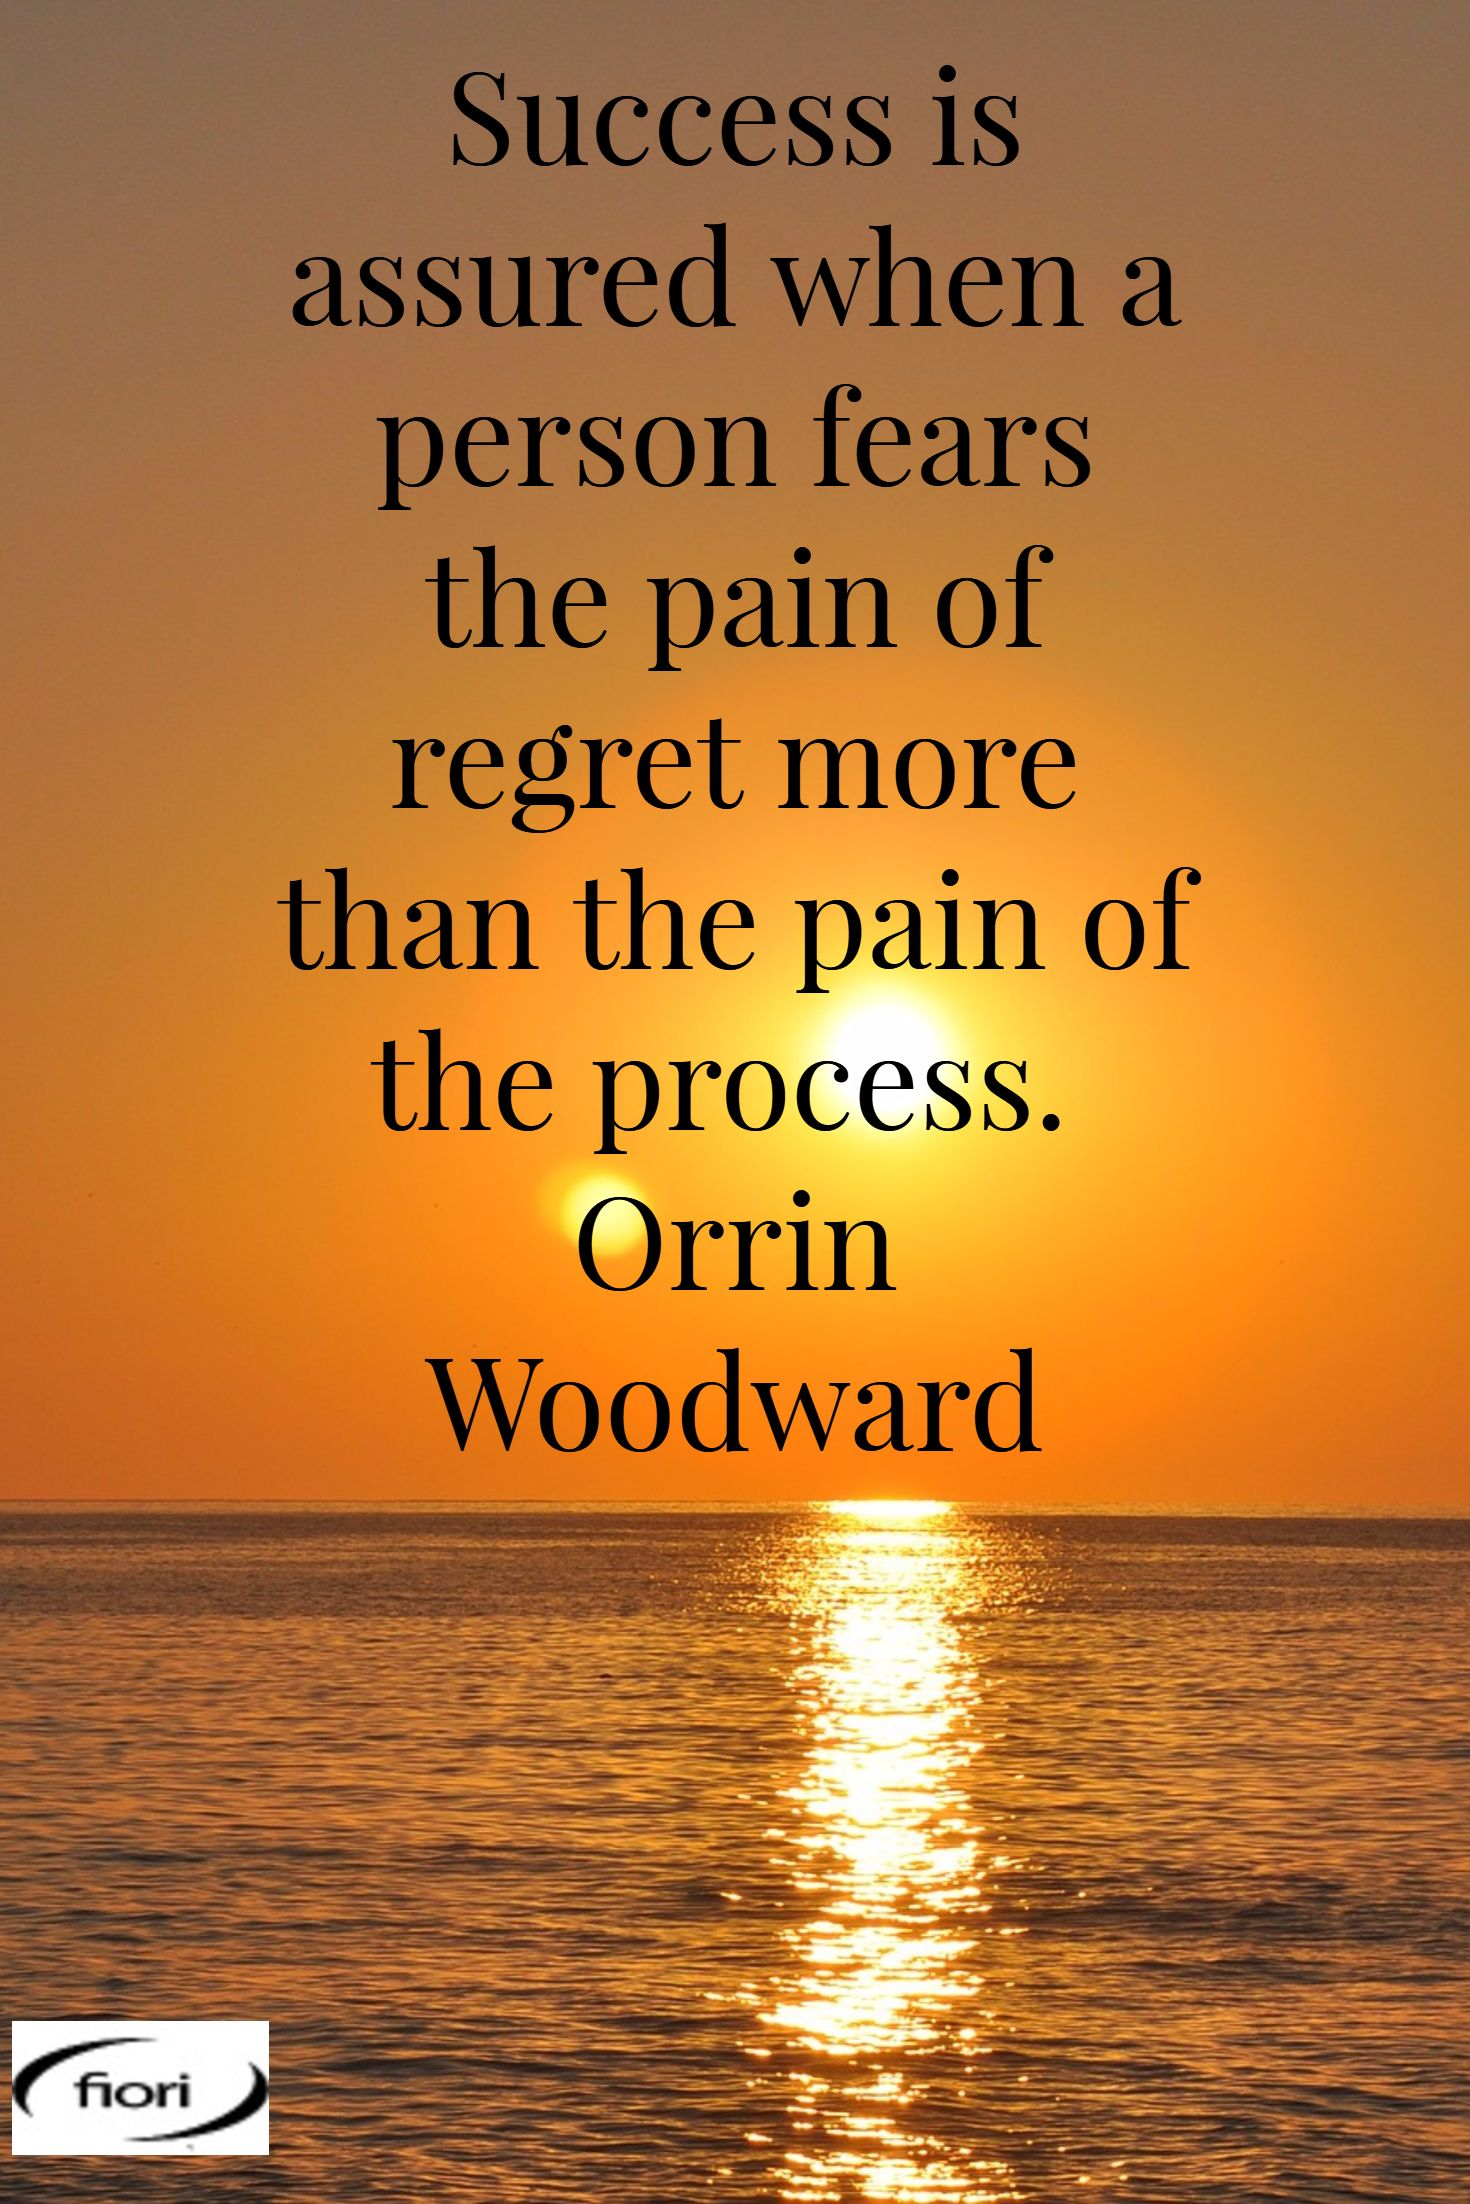 Success is assured when a person fears the pain of regret more than